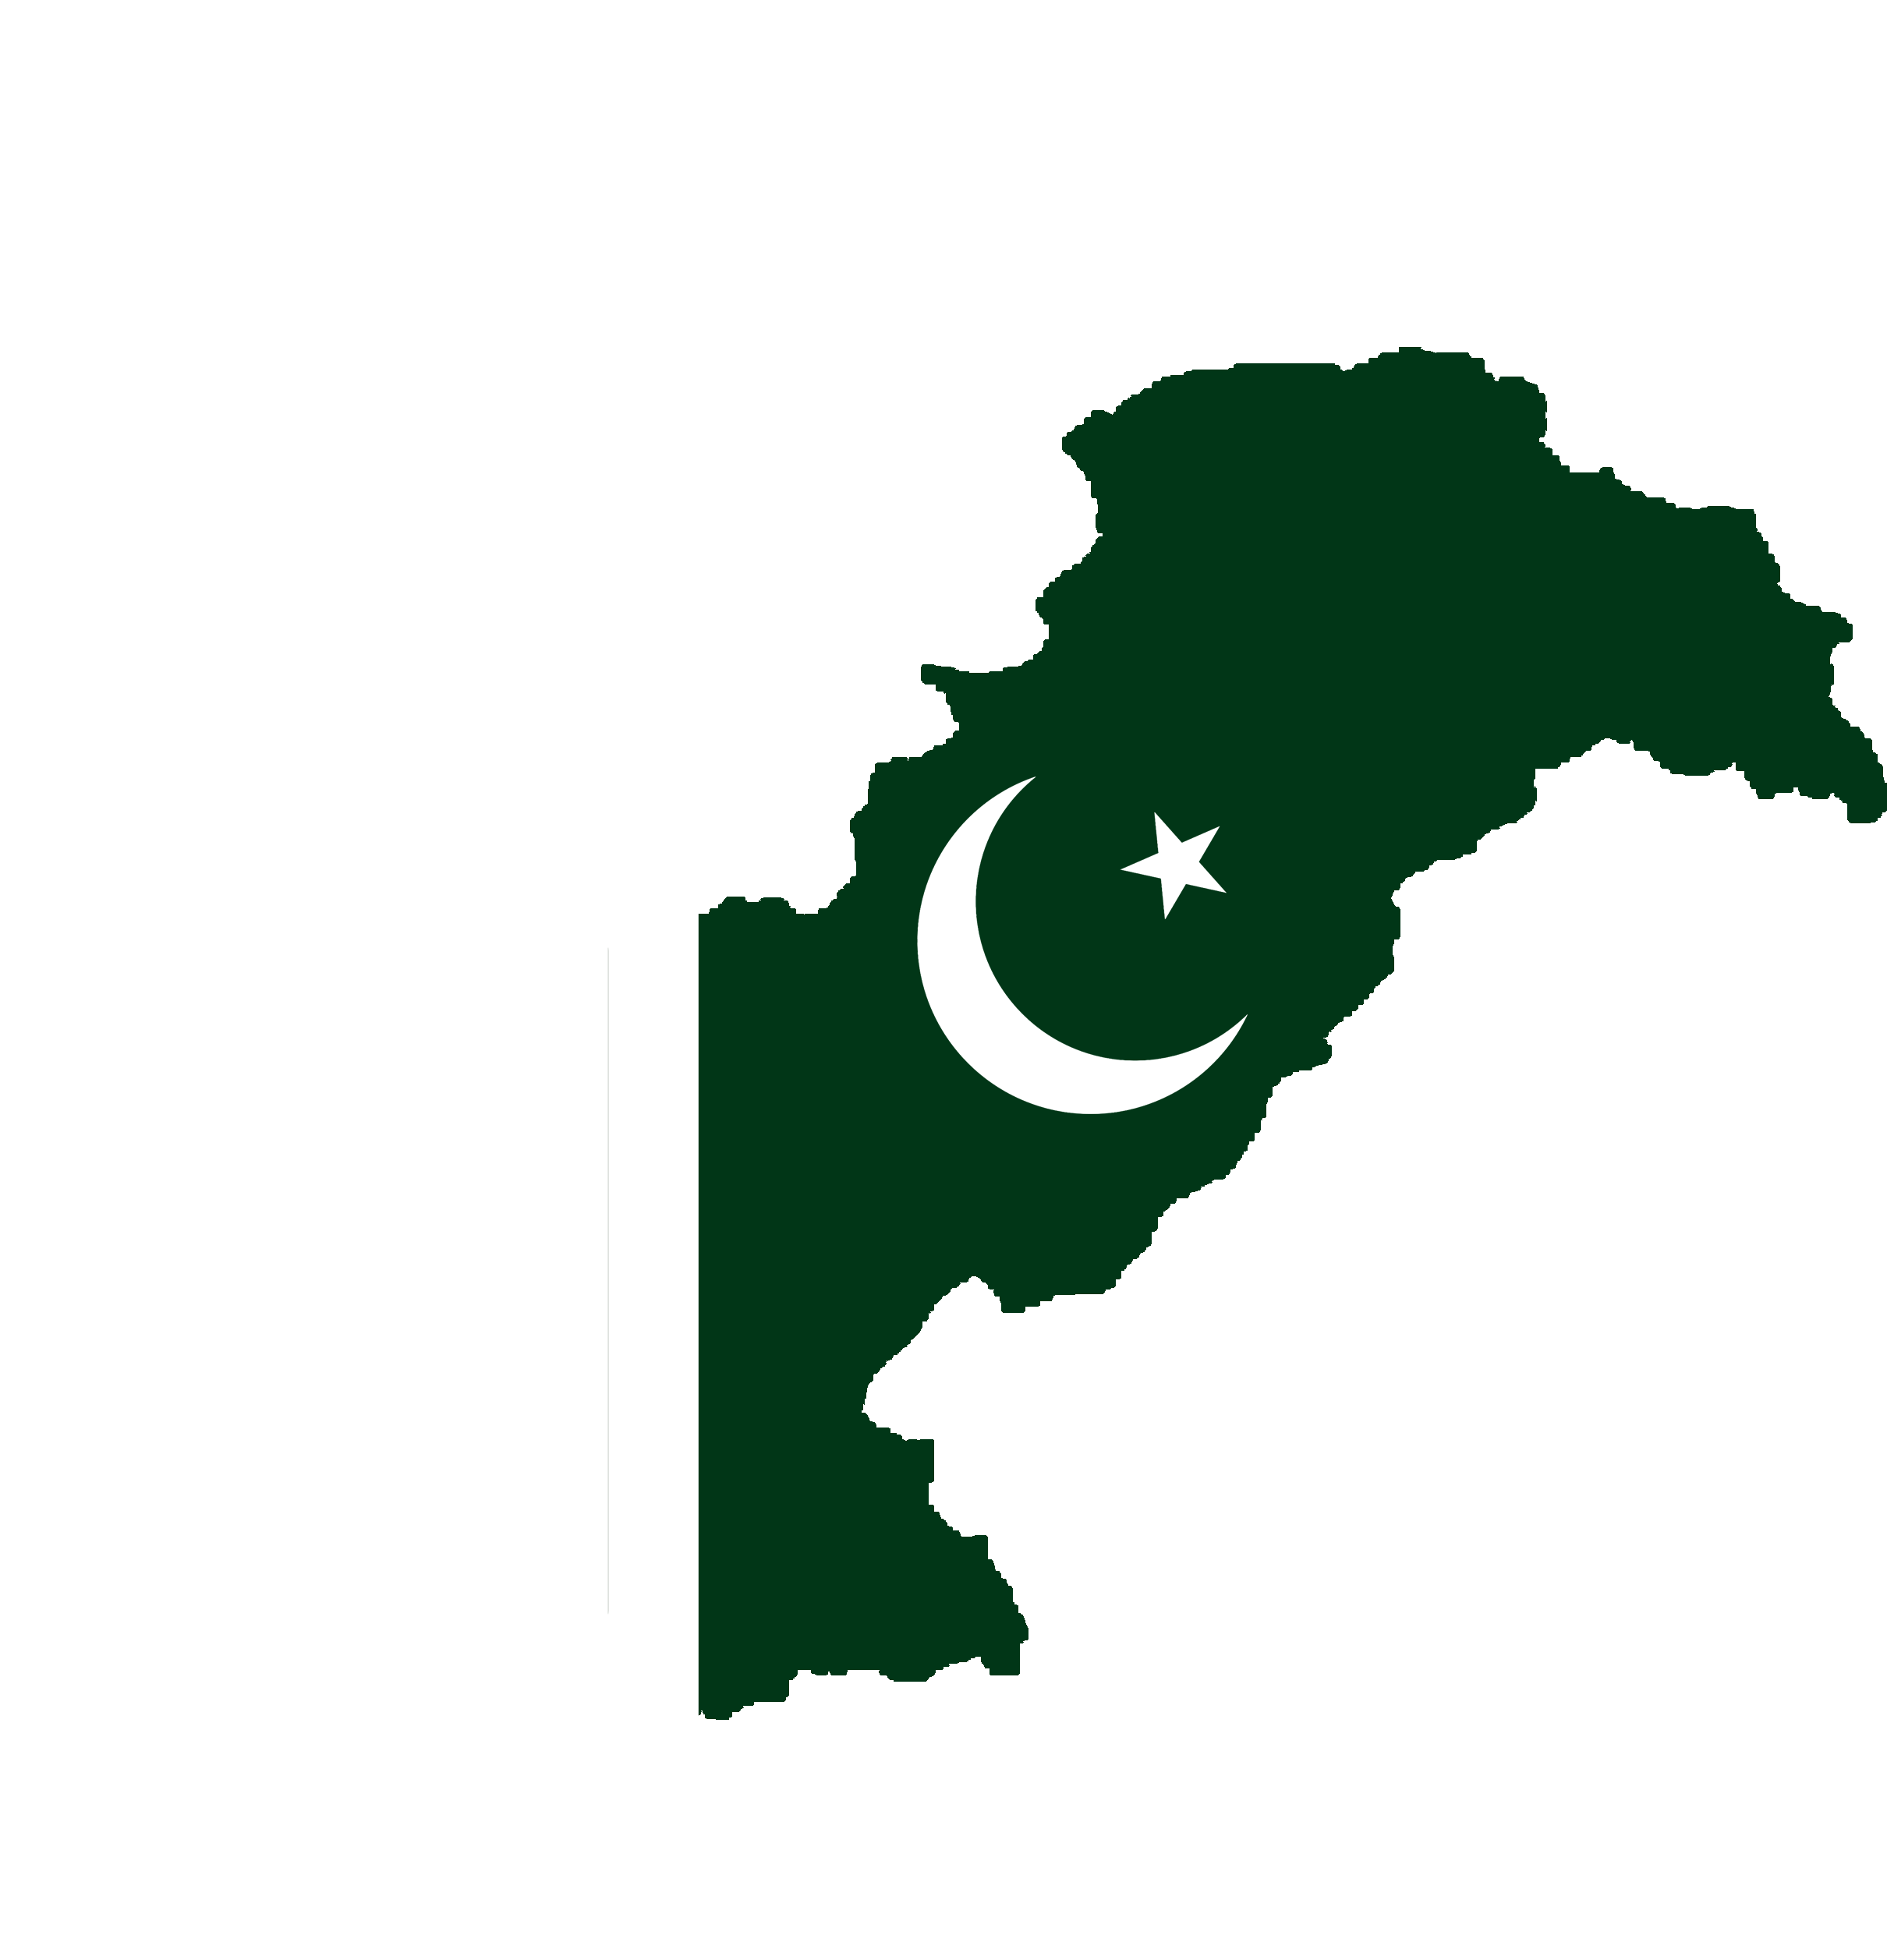 pakistan map flag, Polluted Countries